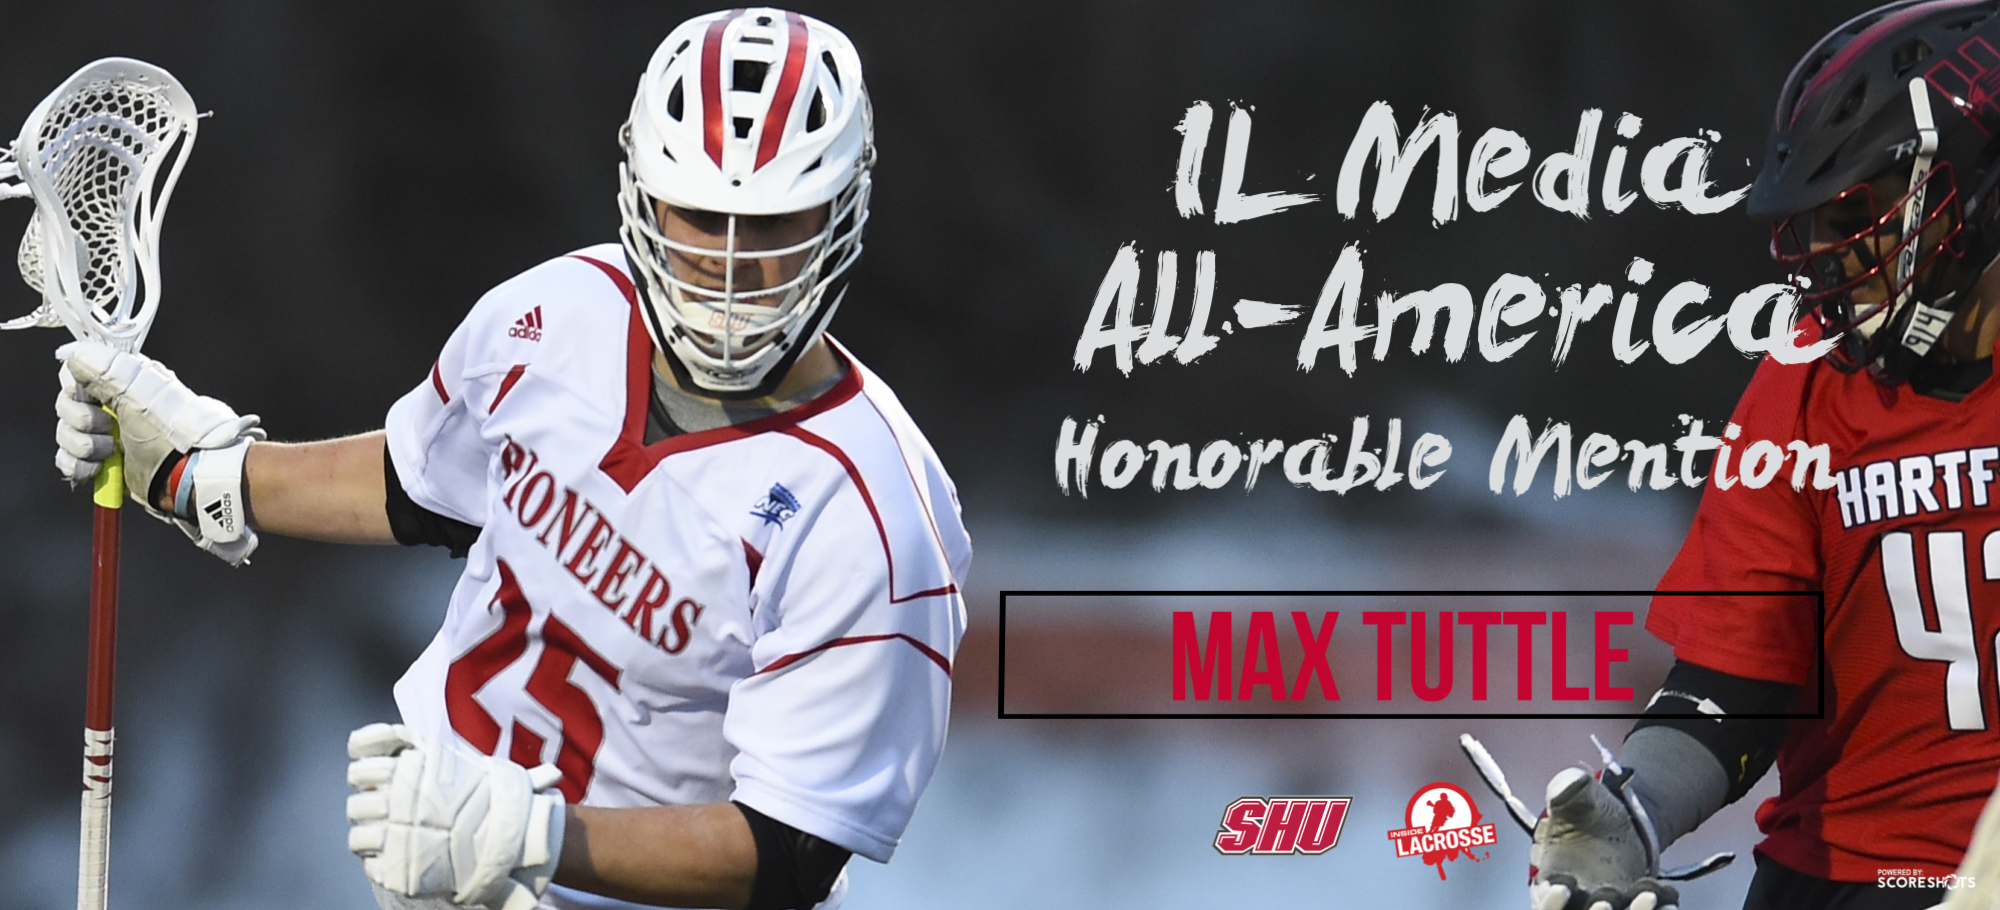 Tuttle Named IL Media All-America Honorable Mention